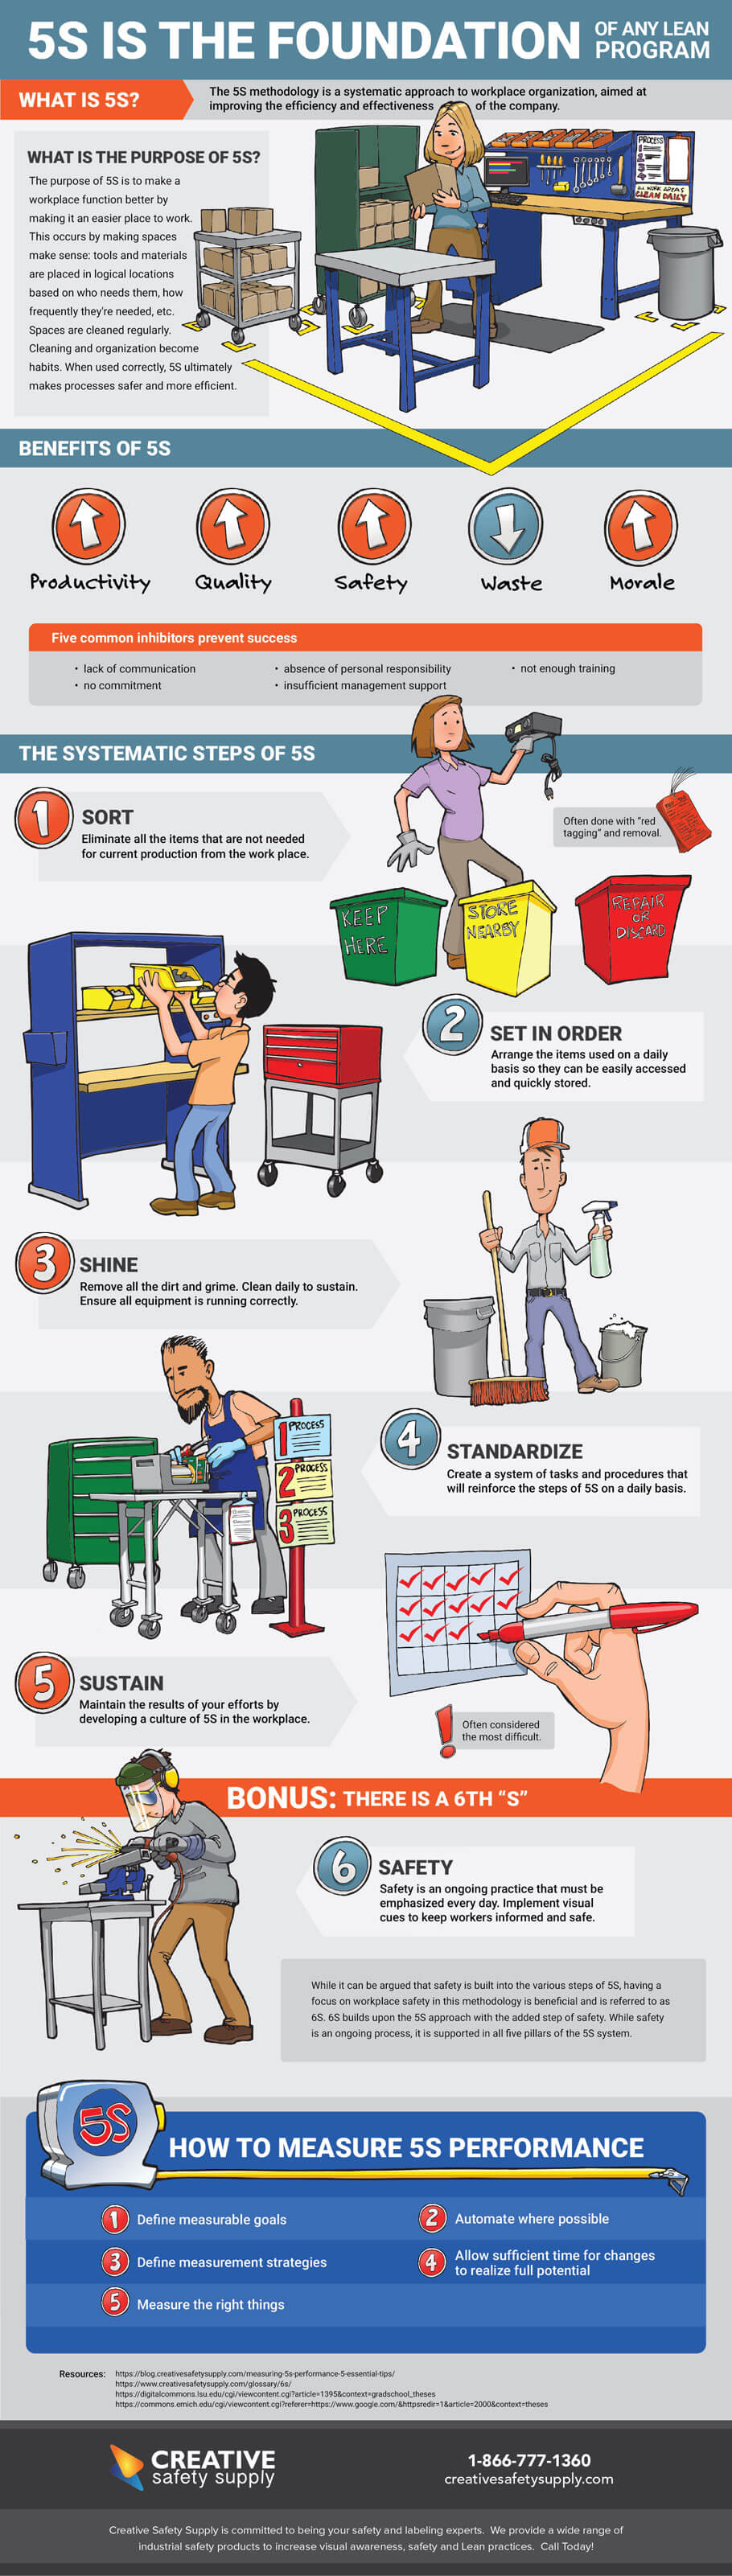 5S is the Foundation of any Lean Program #infographic #Lean Manufacturing #6s #5s #Workplace #Workplace Safety #Performance